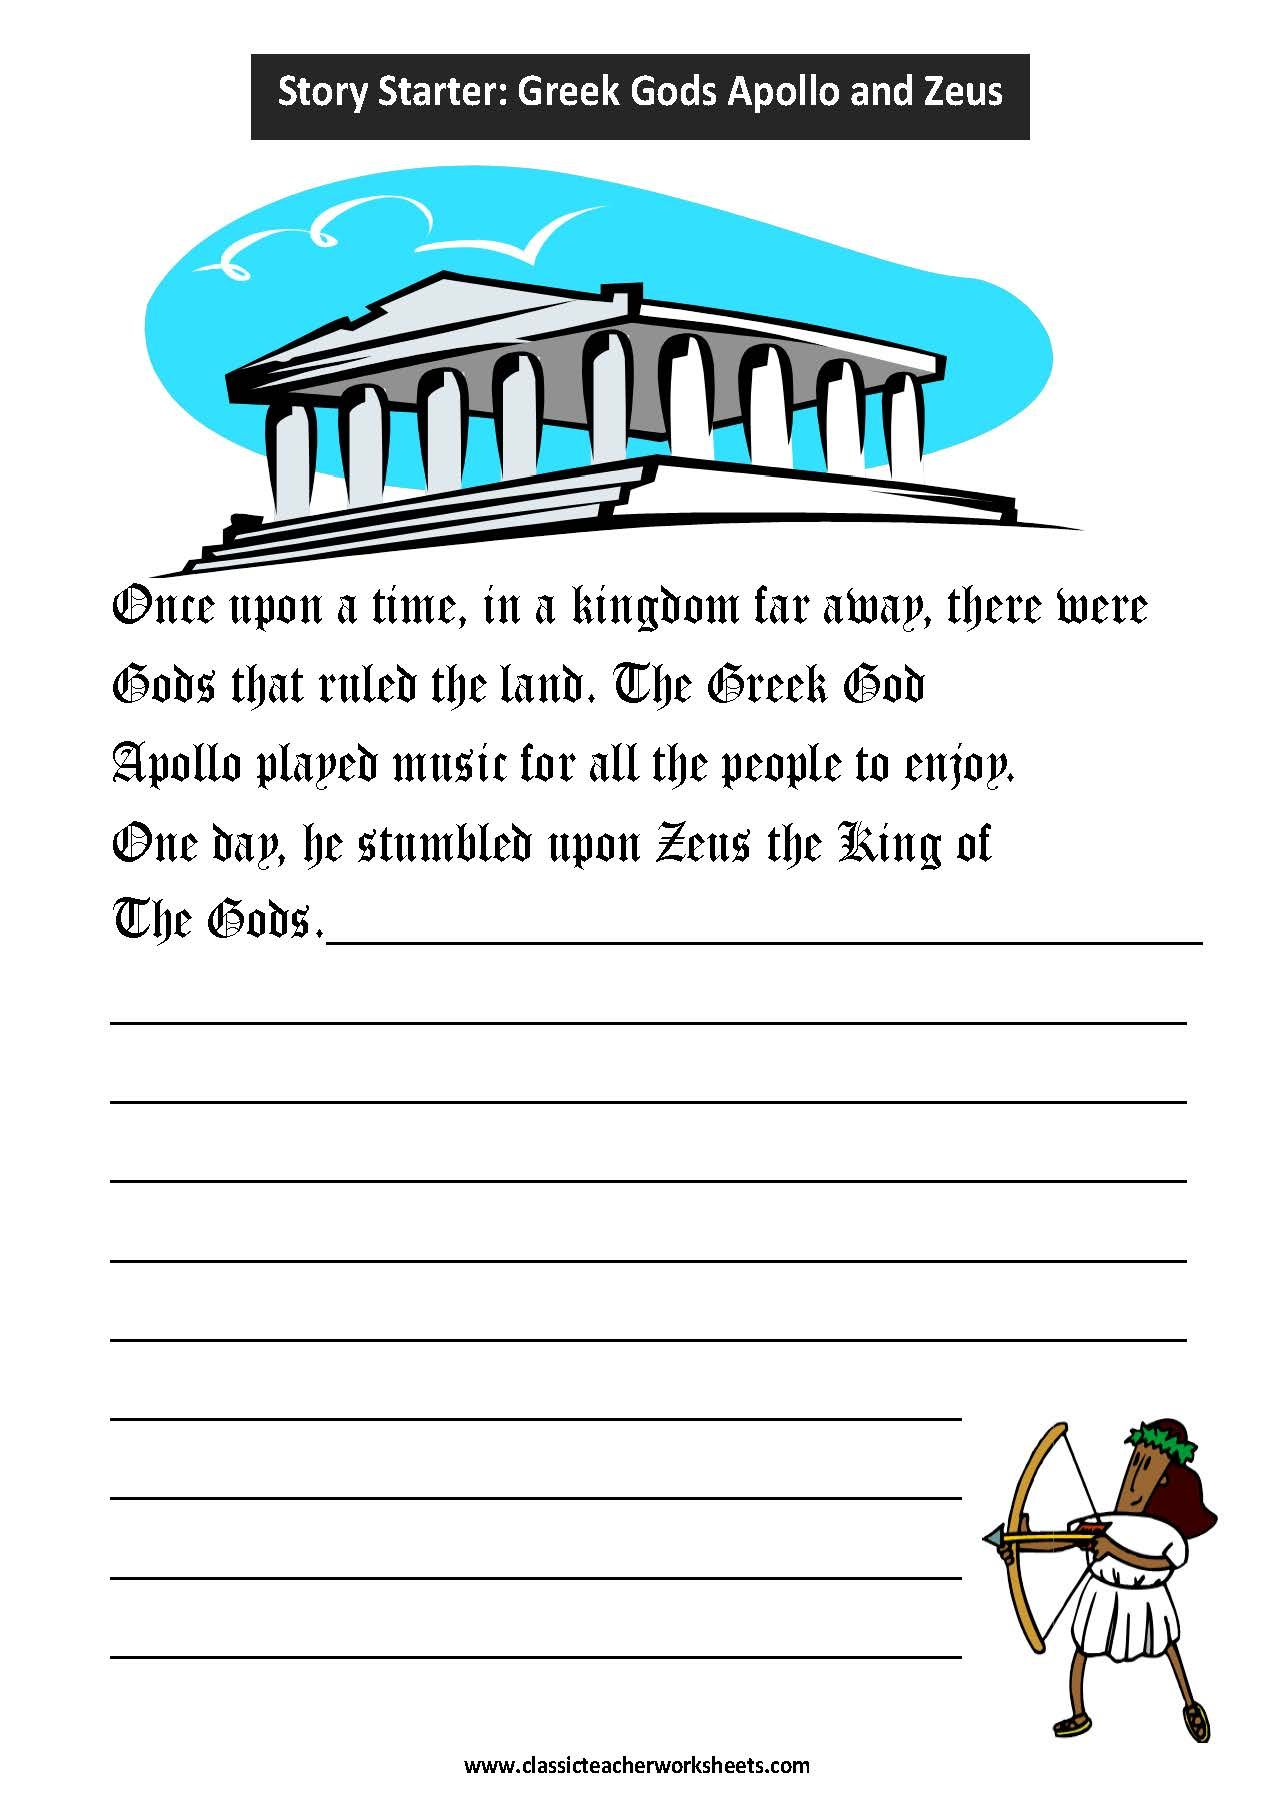 worksheet greek mythology worksheets grass fedjp worksheet study site. Black Bedroom Furniture Sets. Home Design Ideas